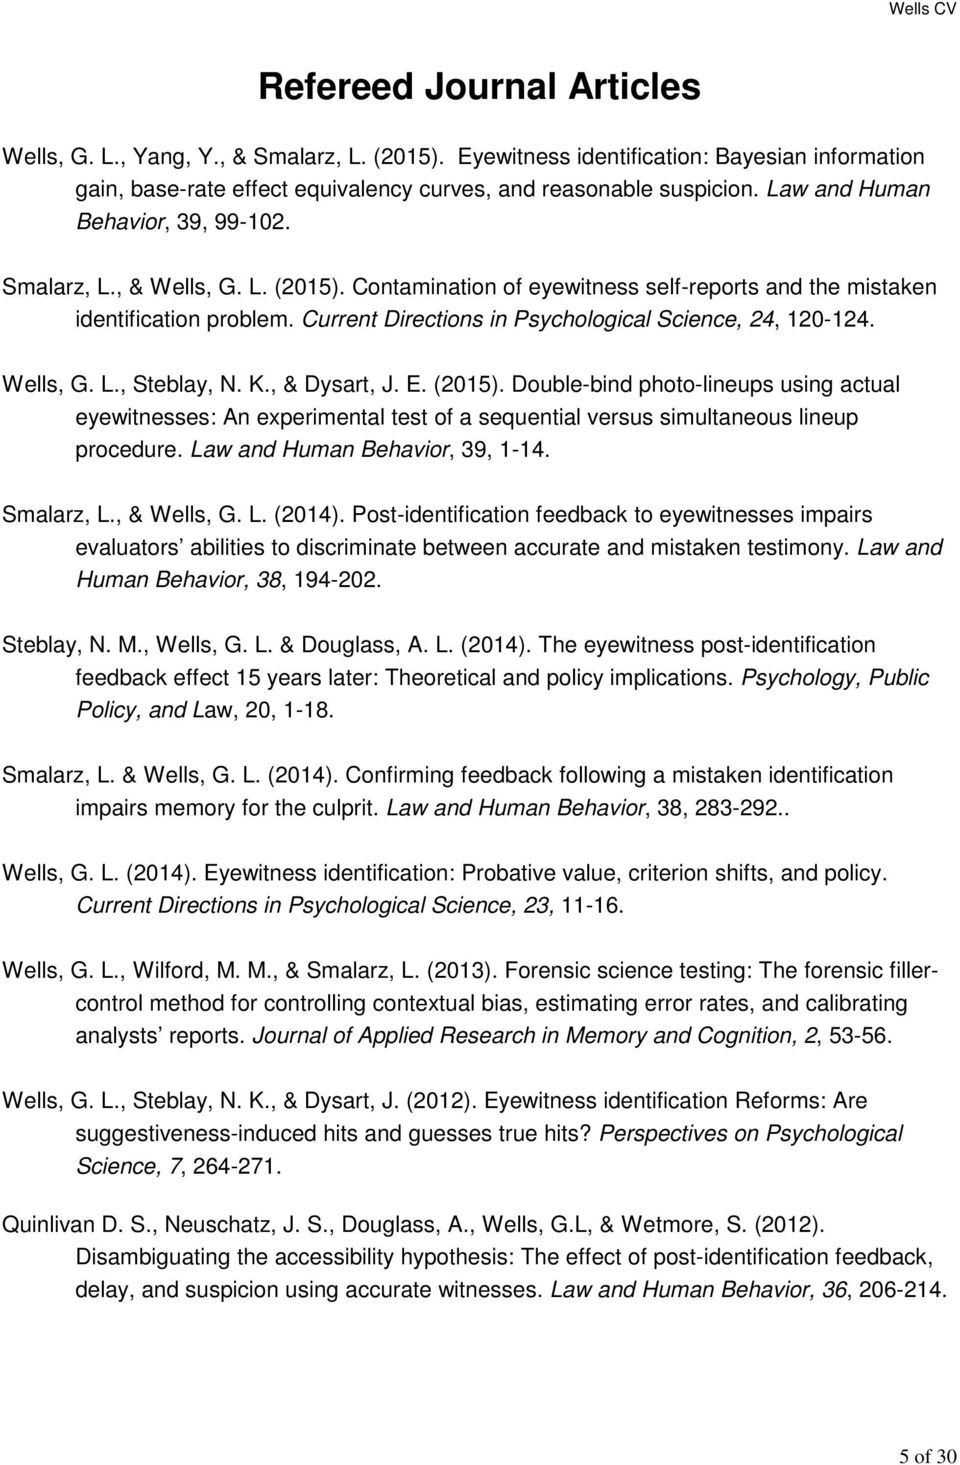 Current Directions in Psychological Science, 24, 120-124. Wells, G. L., Steblay, N. K., & Dysart, J. E. (2015).